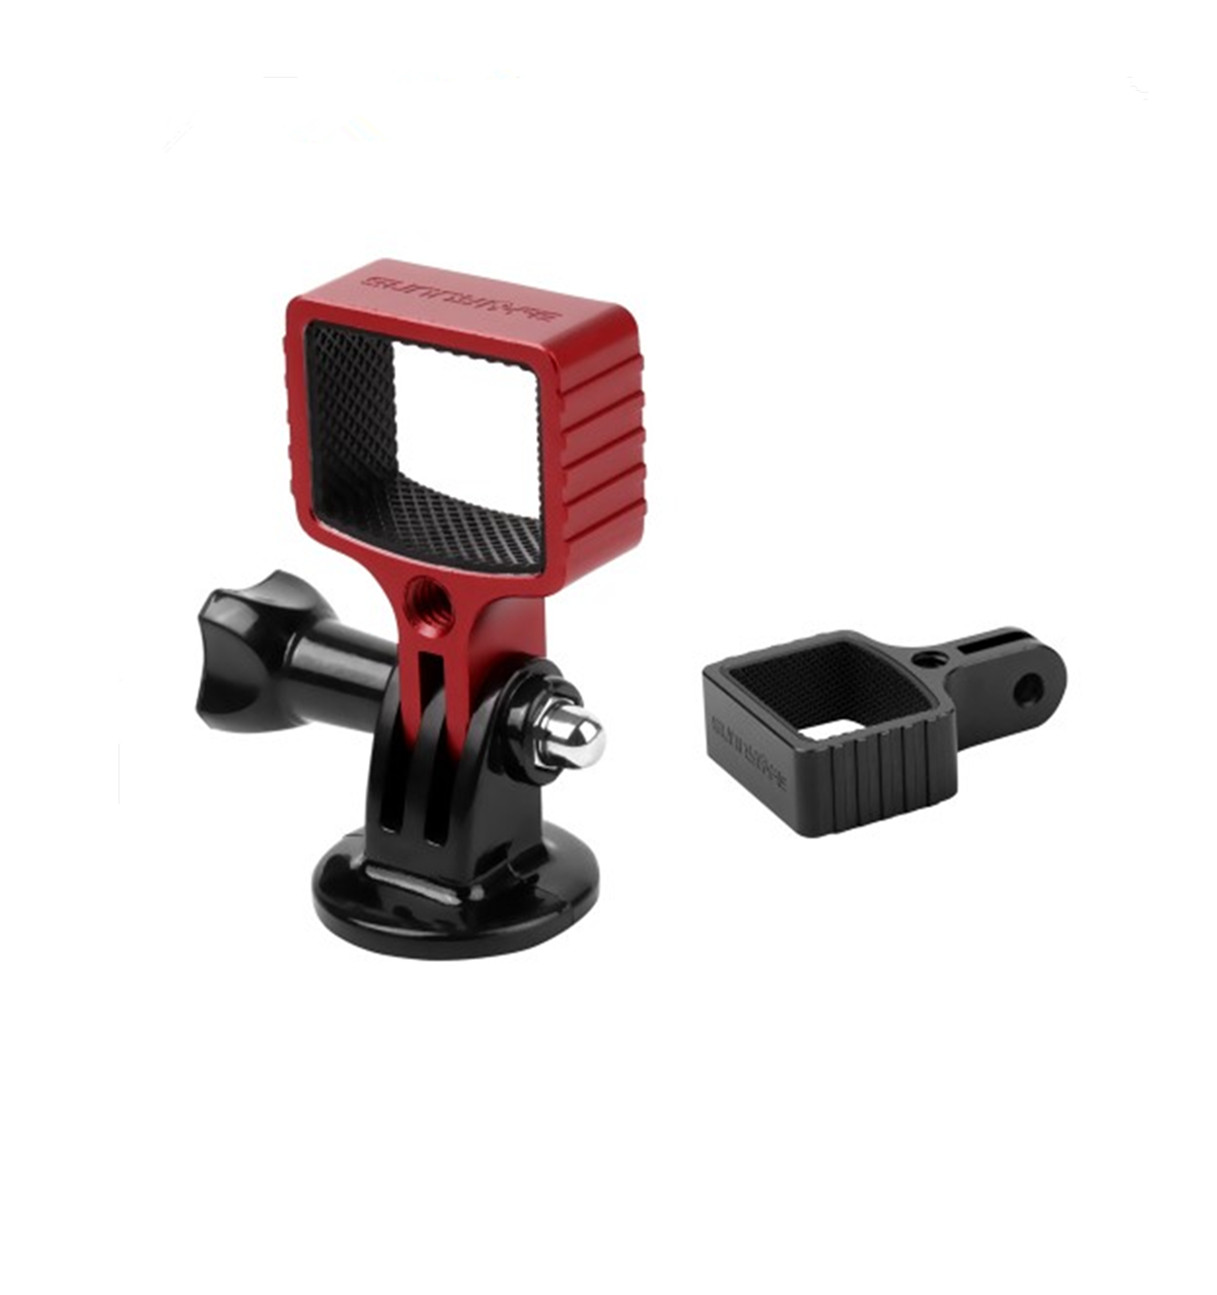 Aluminum Alloy Adapter Extension Mount for Gopro DJI OSMO POCKET